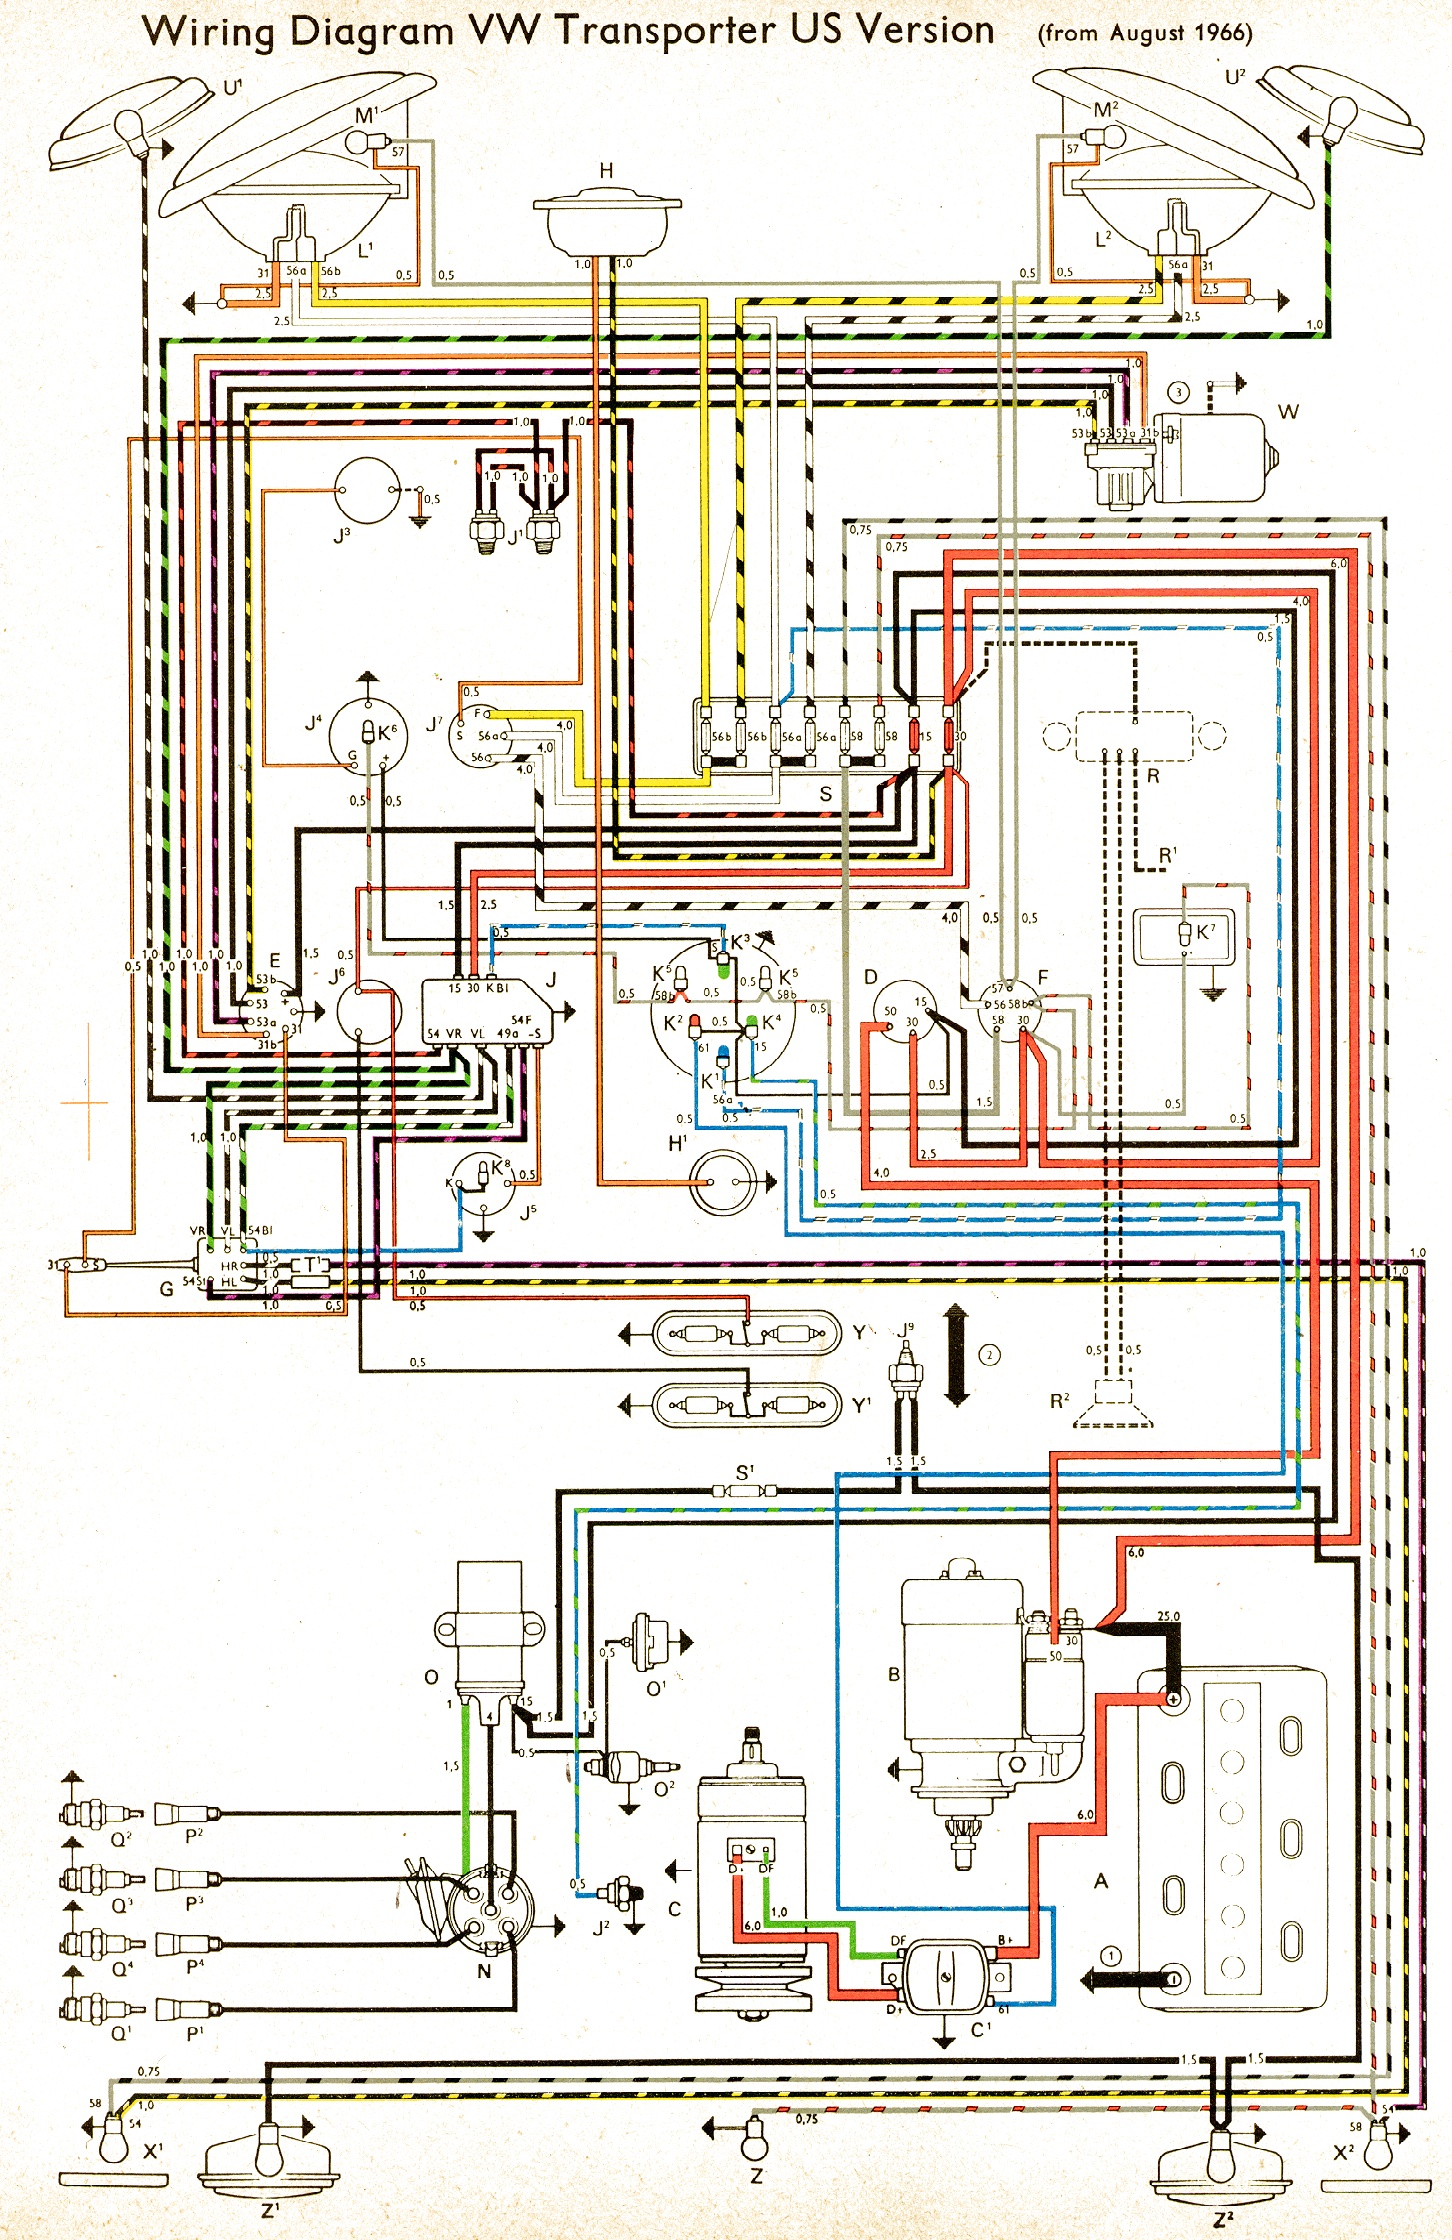 Honda Chopper Wiring Diagram besides Inexpensive 12v Off 7v Modification Fanbus Wiring Diagram in addition Simple Crystal Tester Circuit Diagram furthermore Daf Wiring Diagram in addition Downloadable Manuals. on simple switch wiring diagram